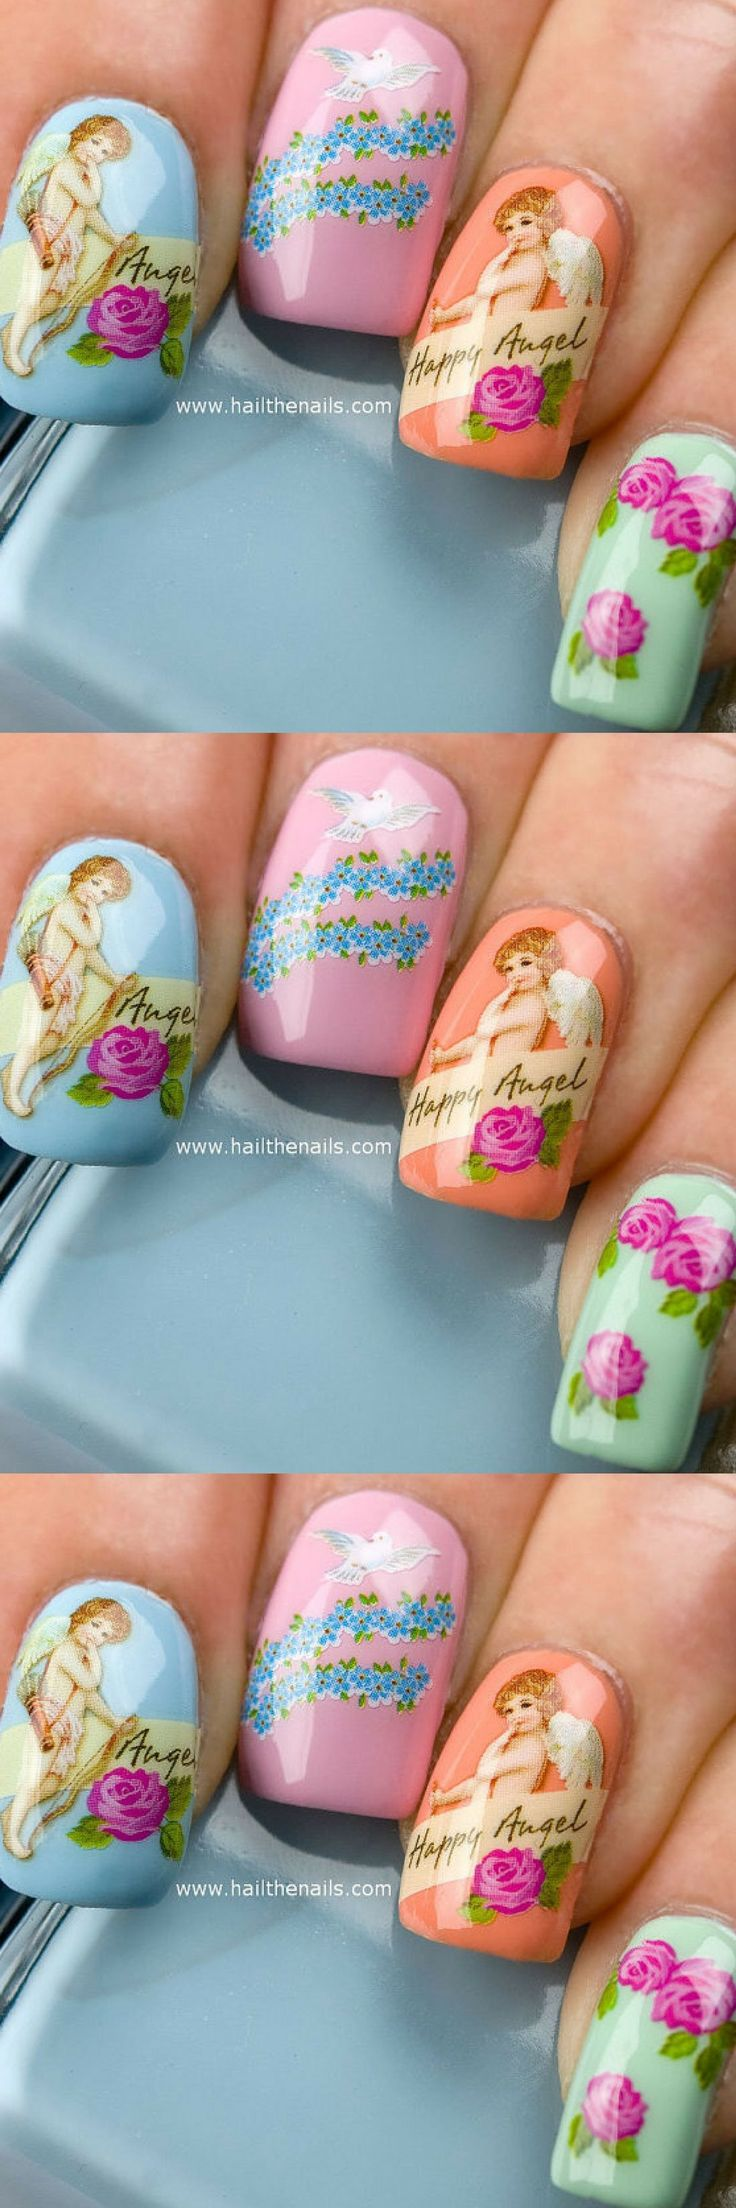 Nail Art Water Transfer Decal Cherubs & Angels Valentines Day Love Nails. Mixture of angels, cherubs & flowers on clear water transfer which  can be applied over any colour varnish on either your natural or false  nail.  Really easy to apply & come with full instructions  Nail Art, Nail Ideas, Nail Designs #nailart #ad #naildesigns